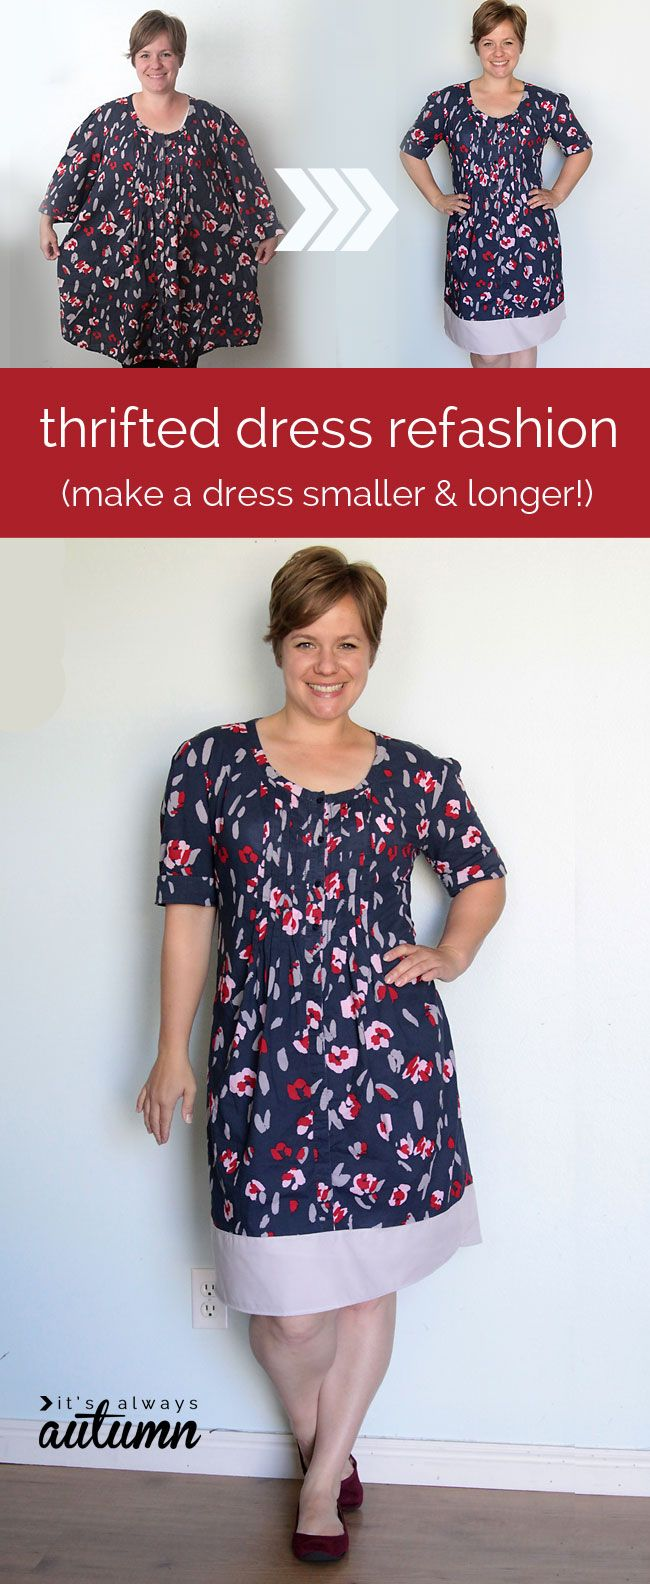 Have you ever found a great dress at a thrift store that's just too big? Find out how to tailor it to fit you with this easy tutorial!